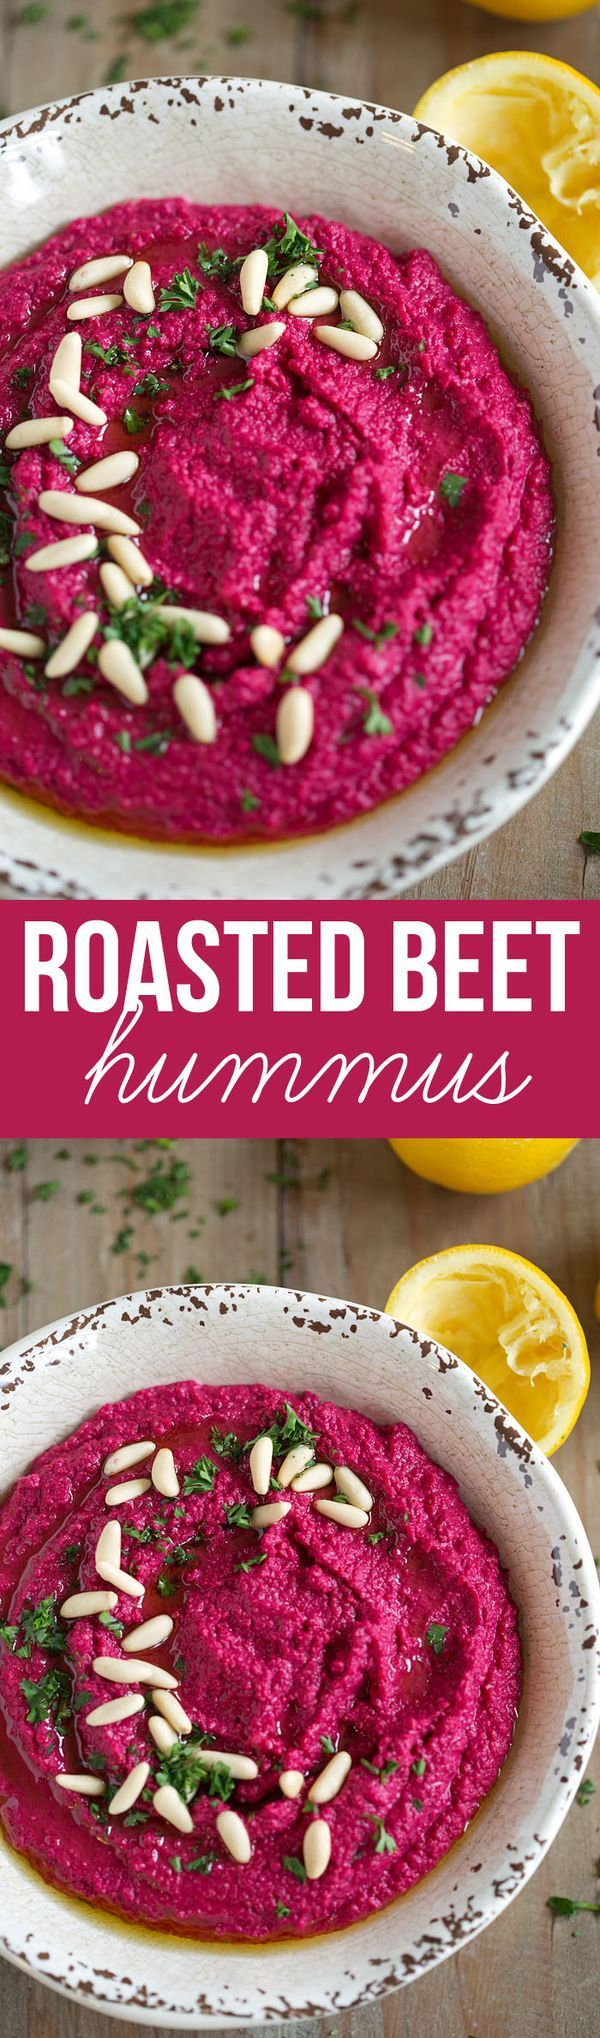 This recipe for Creamy Roasted Beet Hummus is gluten-free, dairy-free, vegan and a FAVORITE in our house! eat-yourself-skinny.com